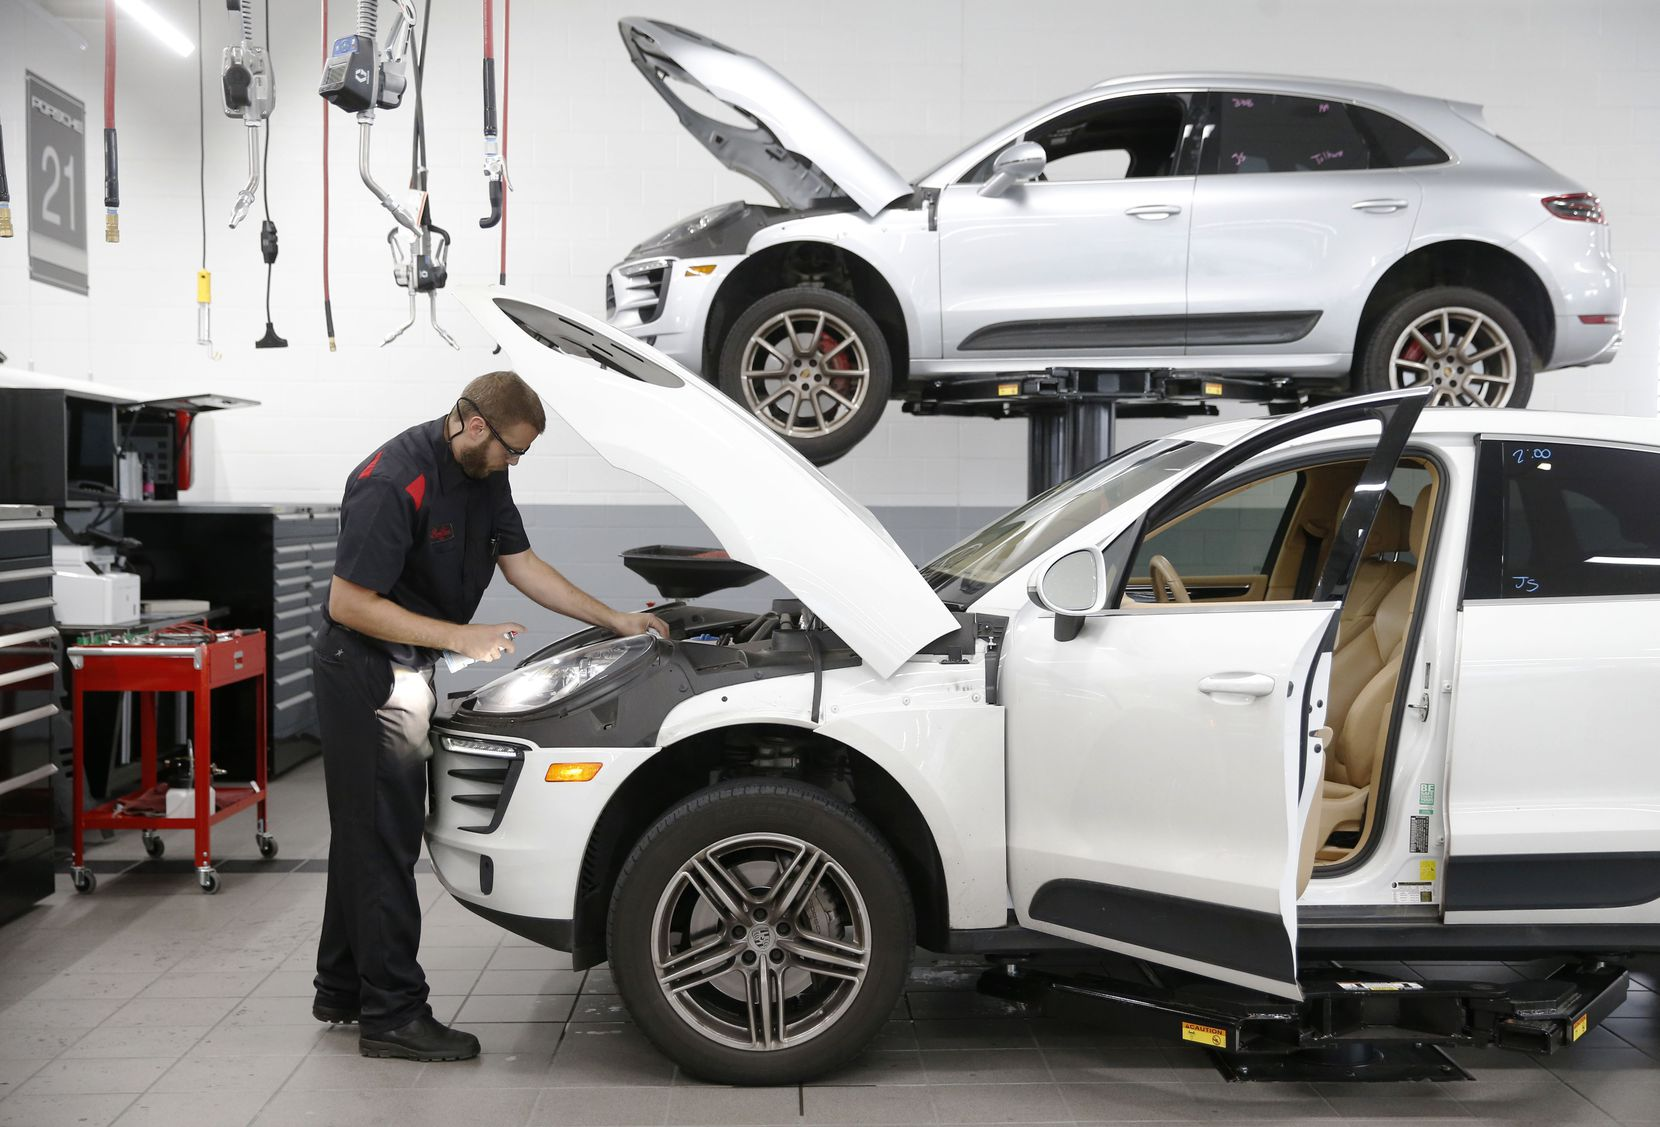 Service technician Mark Giardina finished up work on an SUV at Porsche Grapevine in 2018.